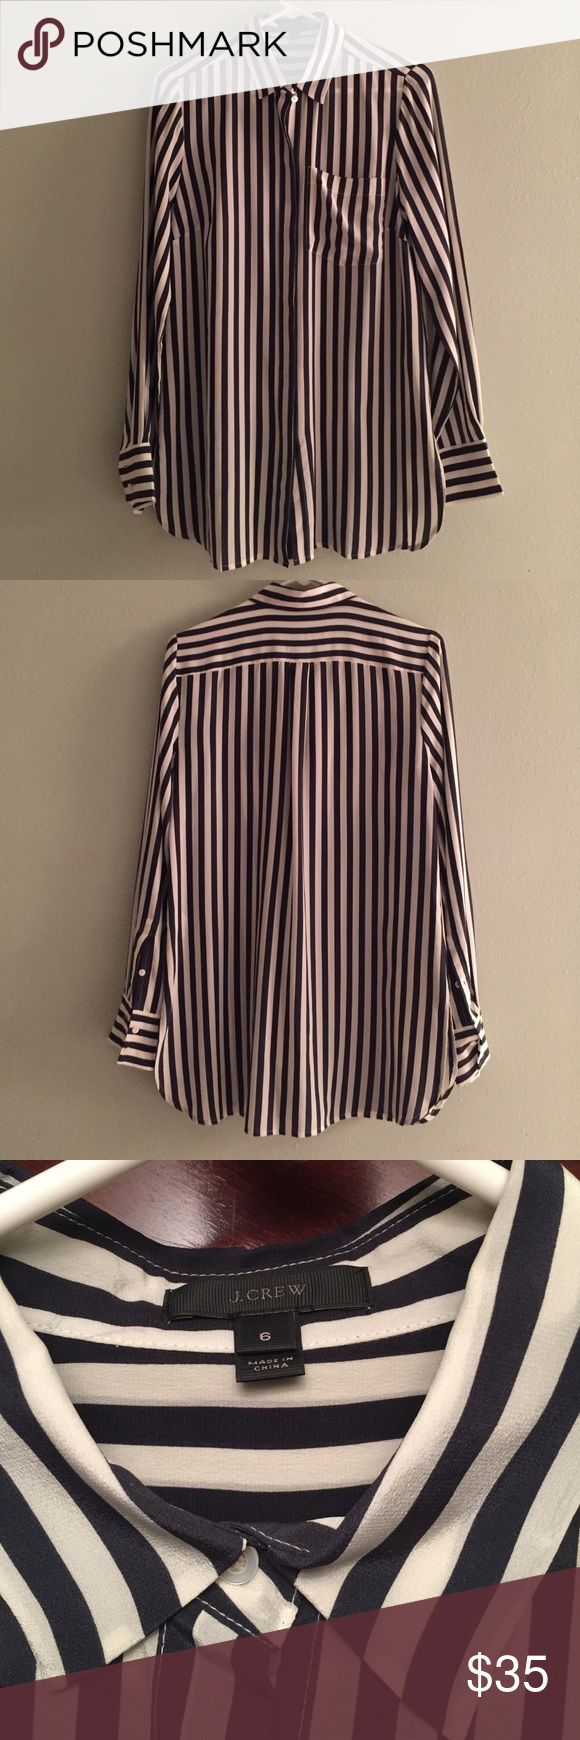 J Crew ivory and Black Striped Shirt Pretty j Crew striped silk shirt in excellent condition.  Size 6.  Longer oversized fit that is great tucked into Your favorite pencil skit or loose over skinny jeans or leggings. J. Crew Tops Button Down Shirts